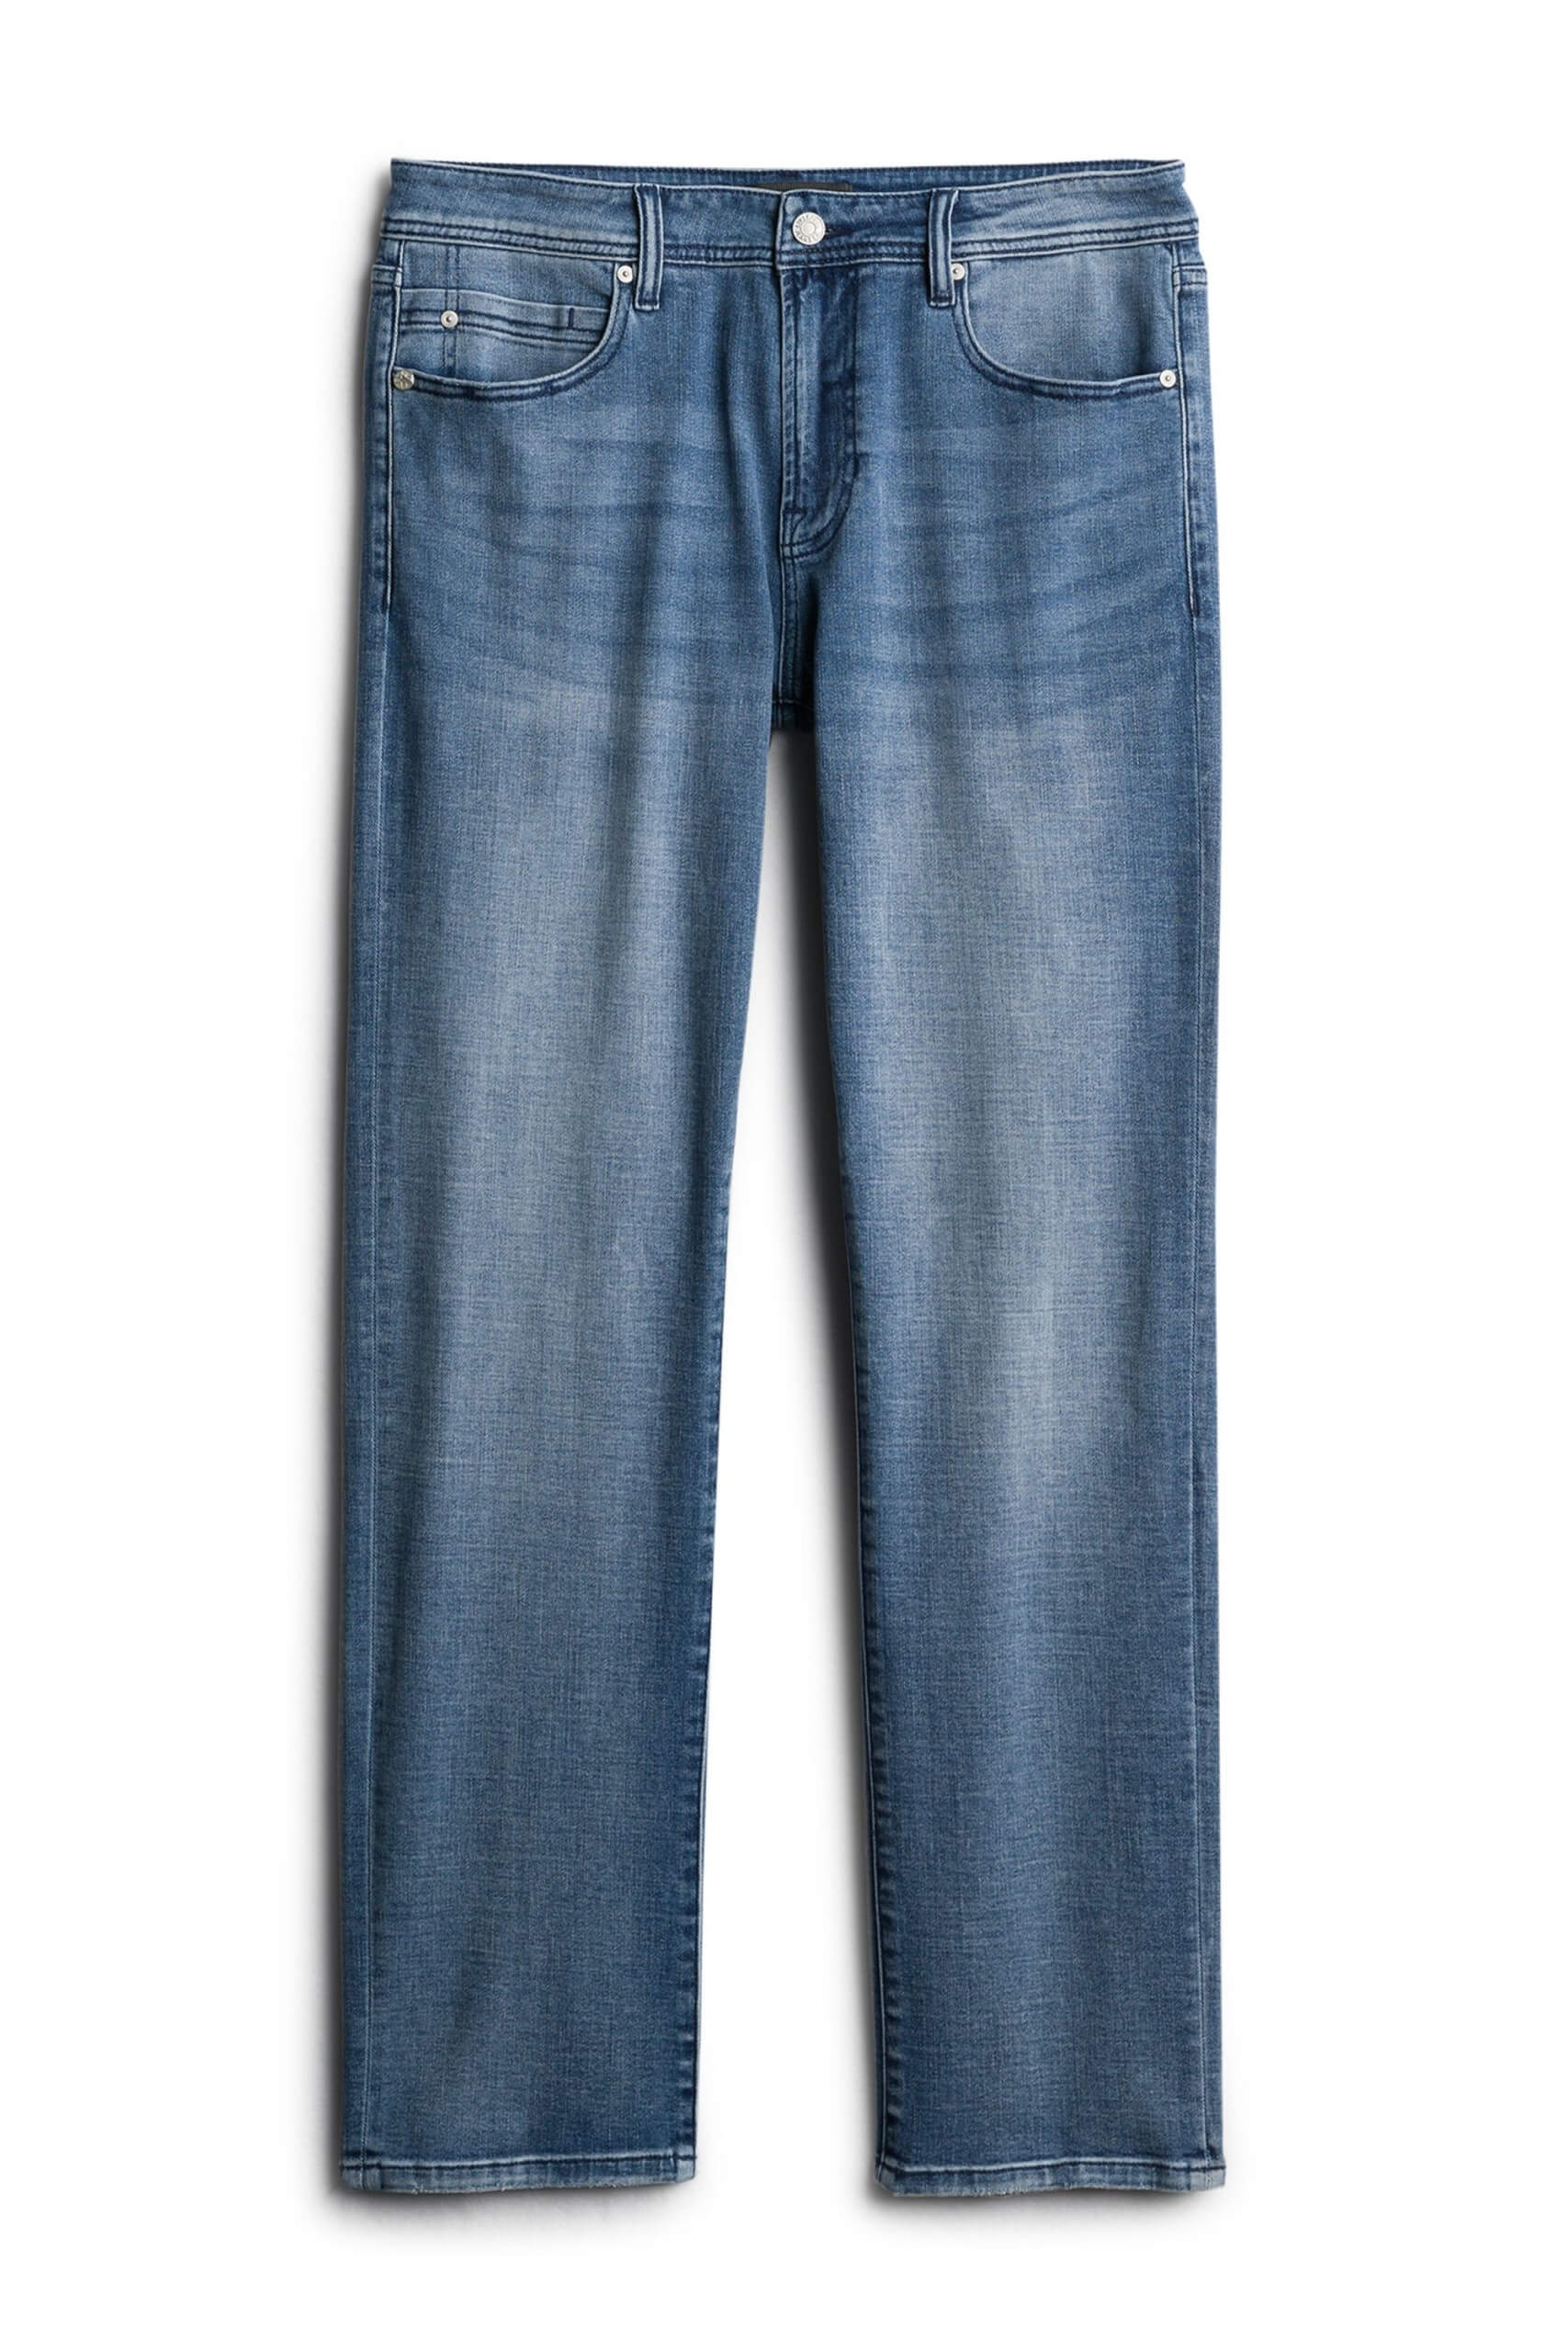 Stitch Fix Men's relaxed jeans.